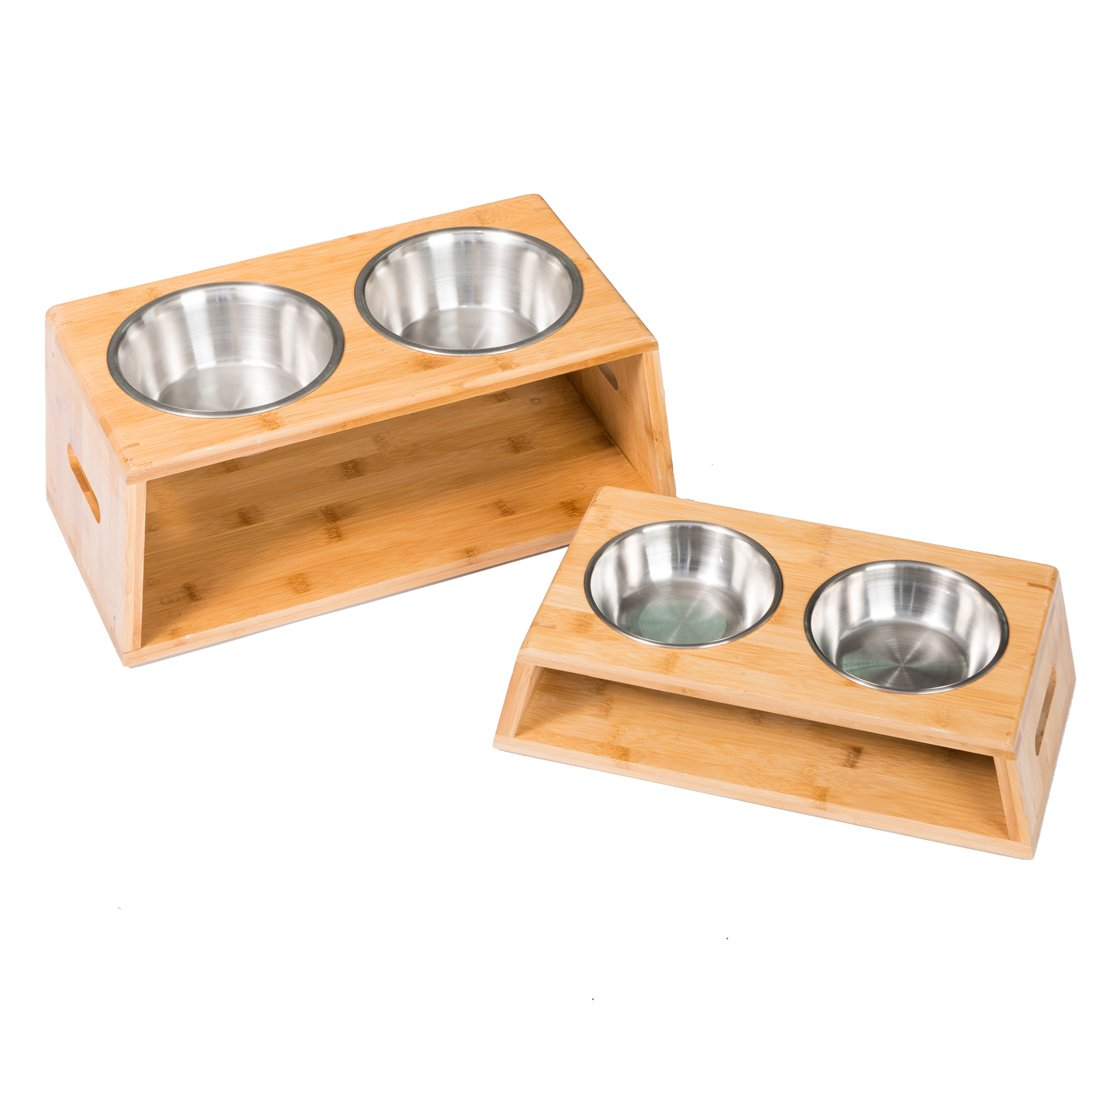 GOOD LIFE Elevated Dog Cat Pet Feeder Tall Dog Bowl Raised Bamboo Stand Cat Food Bowls Double Stainless Bowl for Small to Middle Dogs Cats